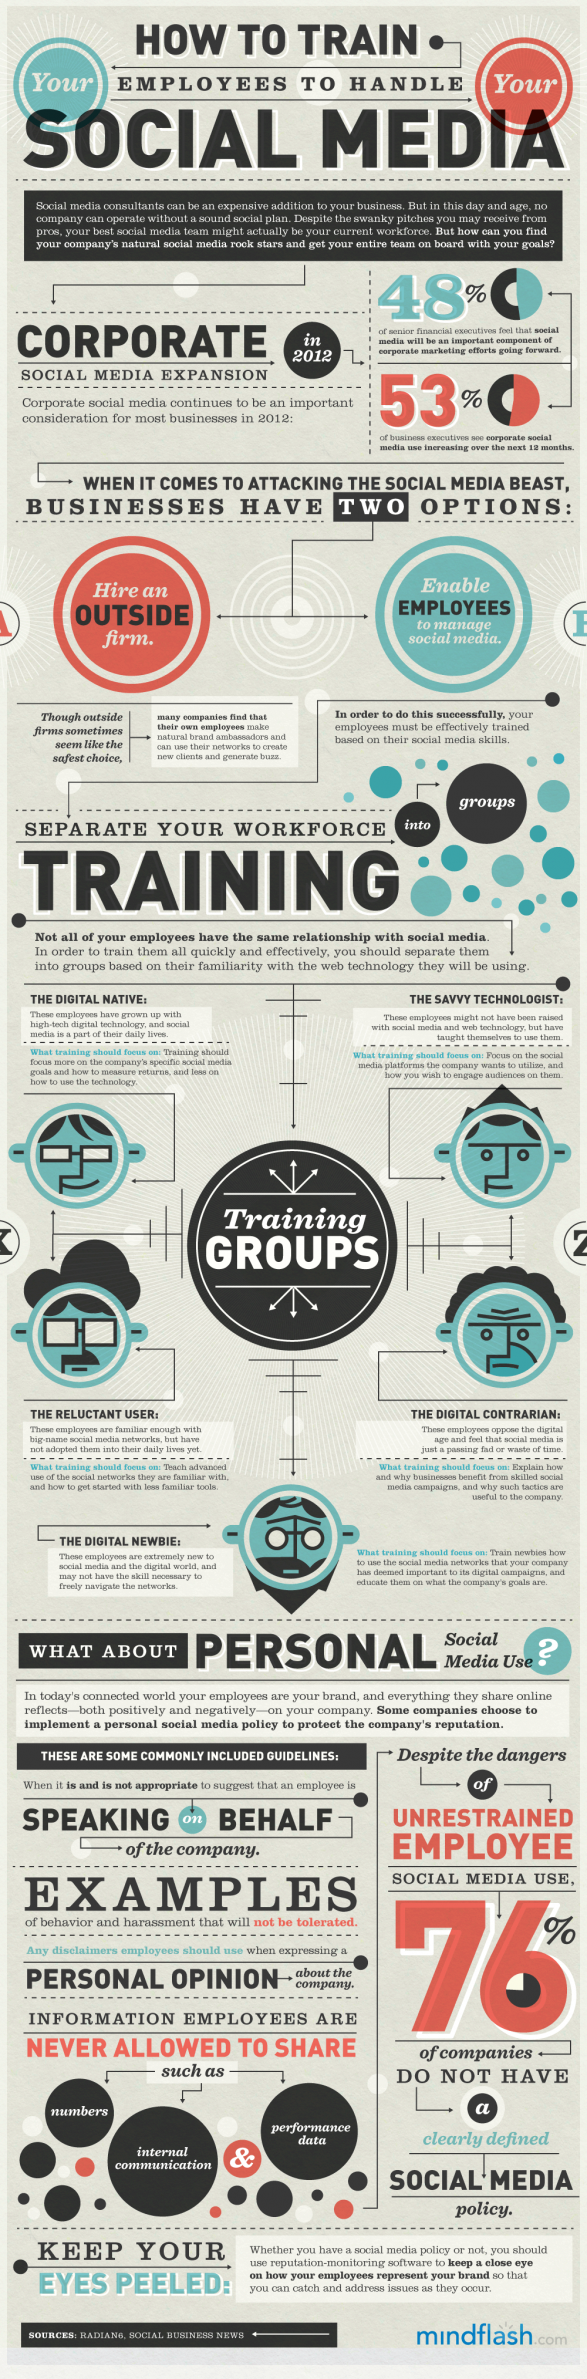 How-To-Train-Employees-To-Handle-Social-Media-infographic